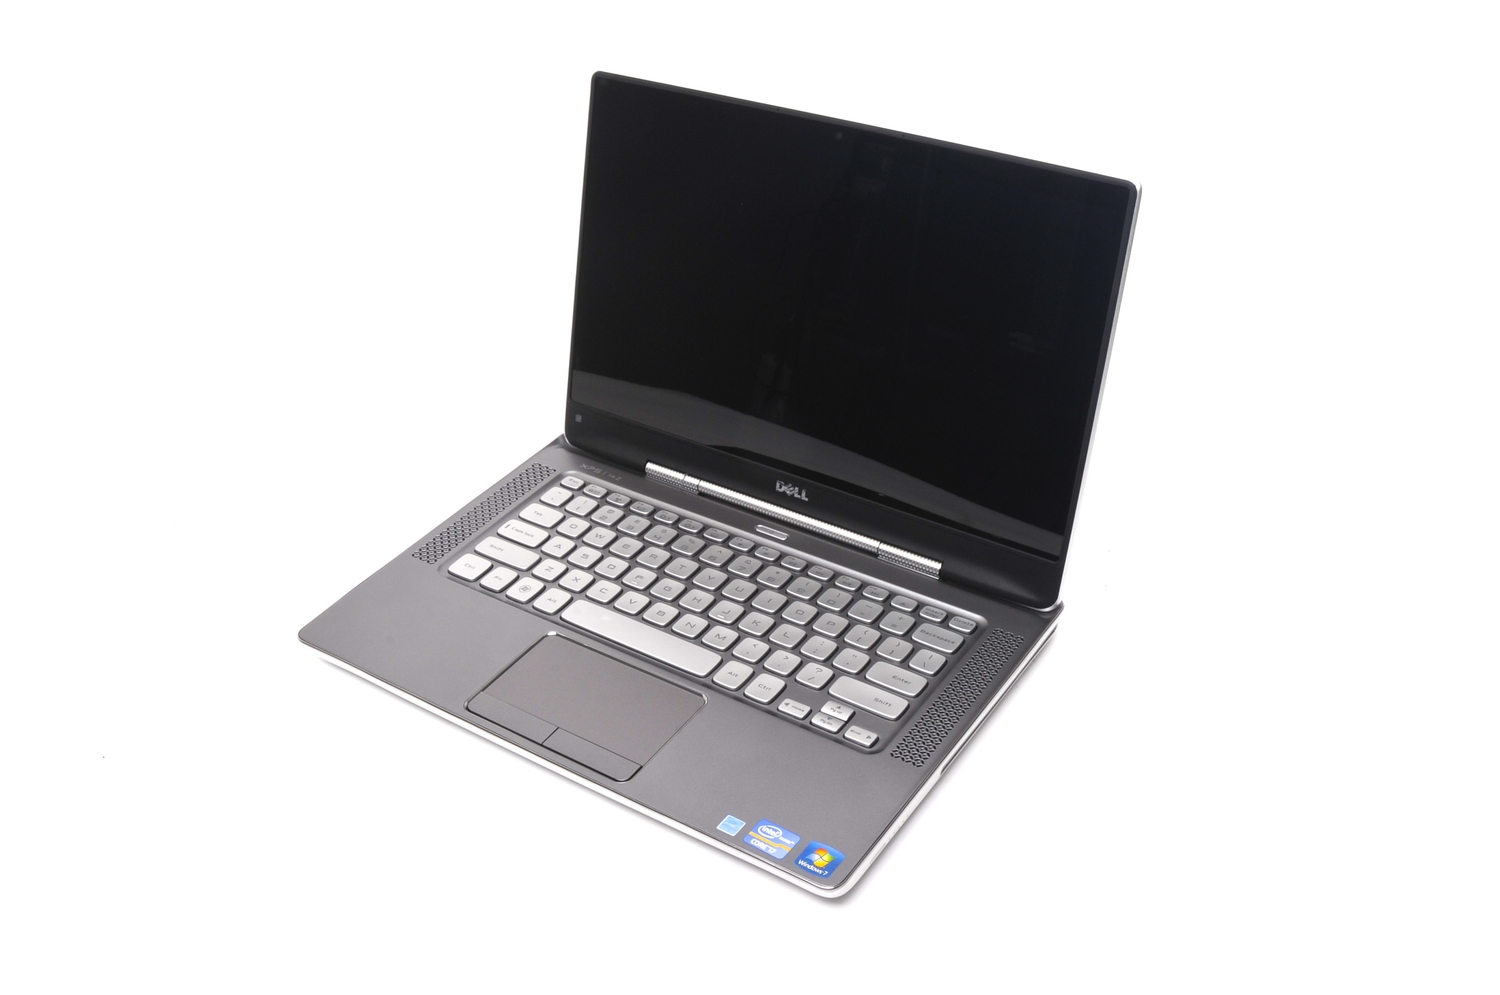 Dell XPS 14z Reviews